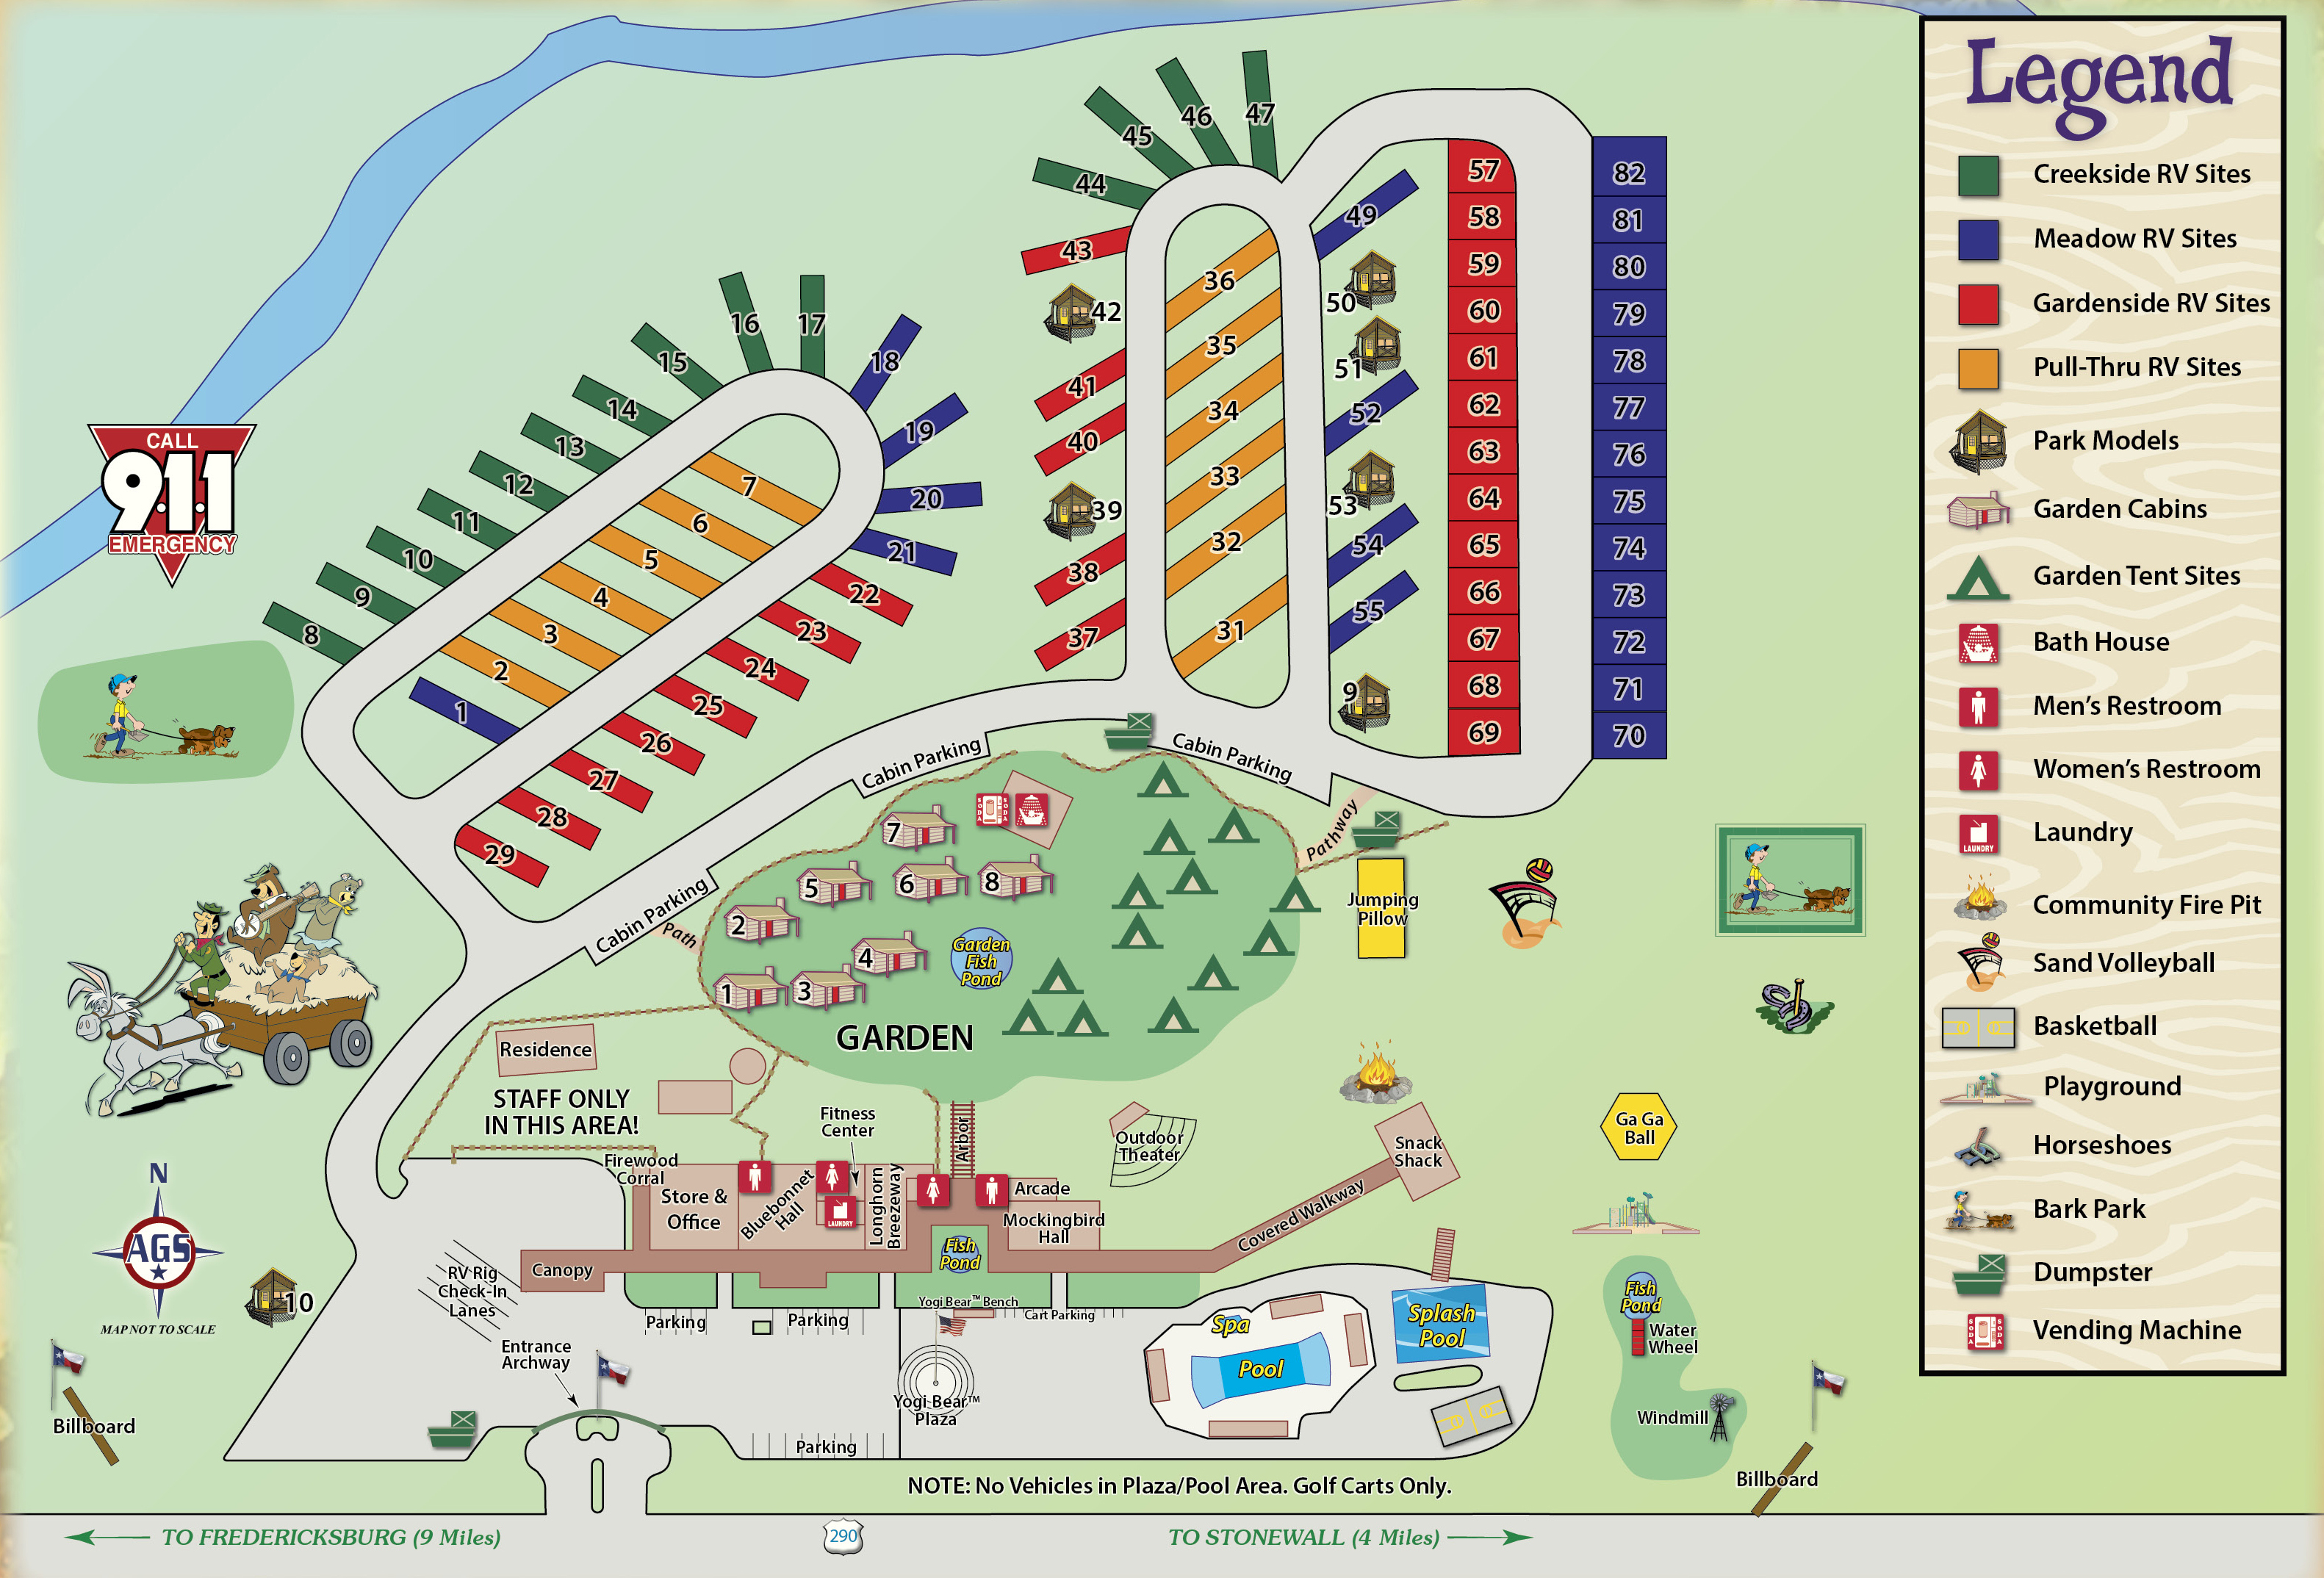 Wine Country Area Camping In Texas | Yogi Bear's Jellystone Park - Texas Hill Country Wineries Map